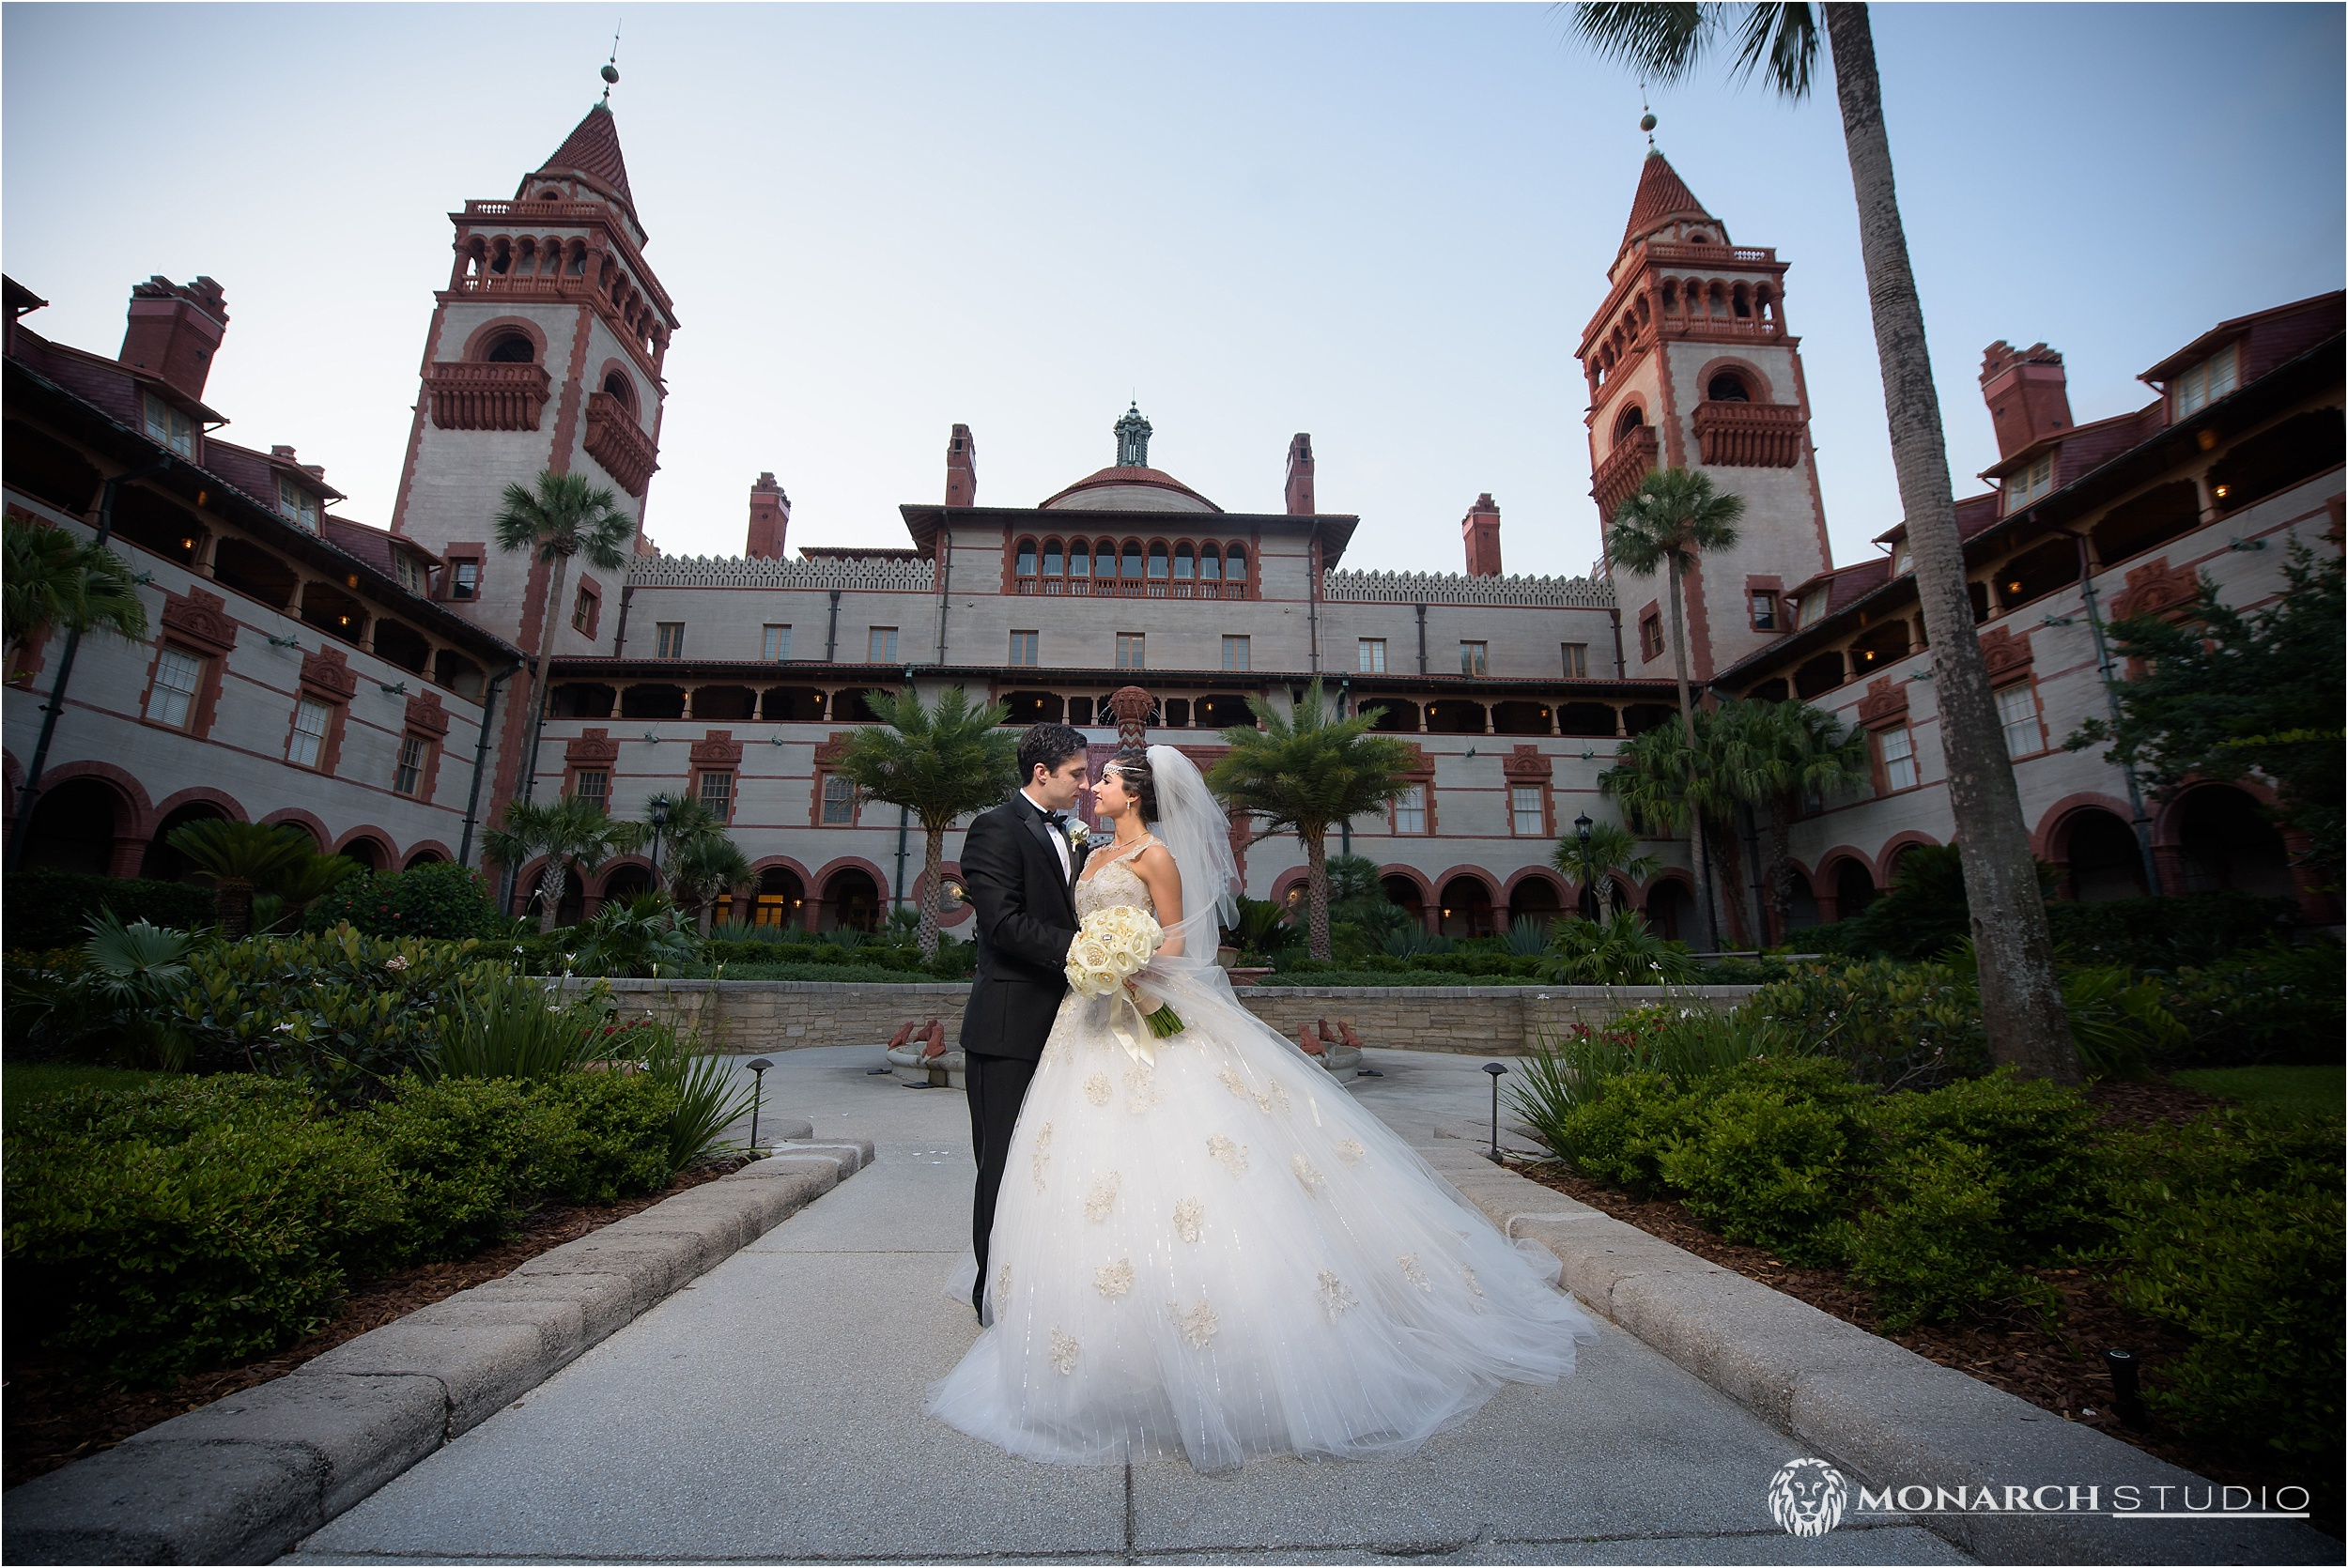 David and Neda stand at the gates  Flagler College with the towers on the background